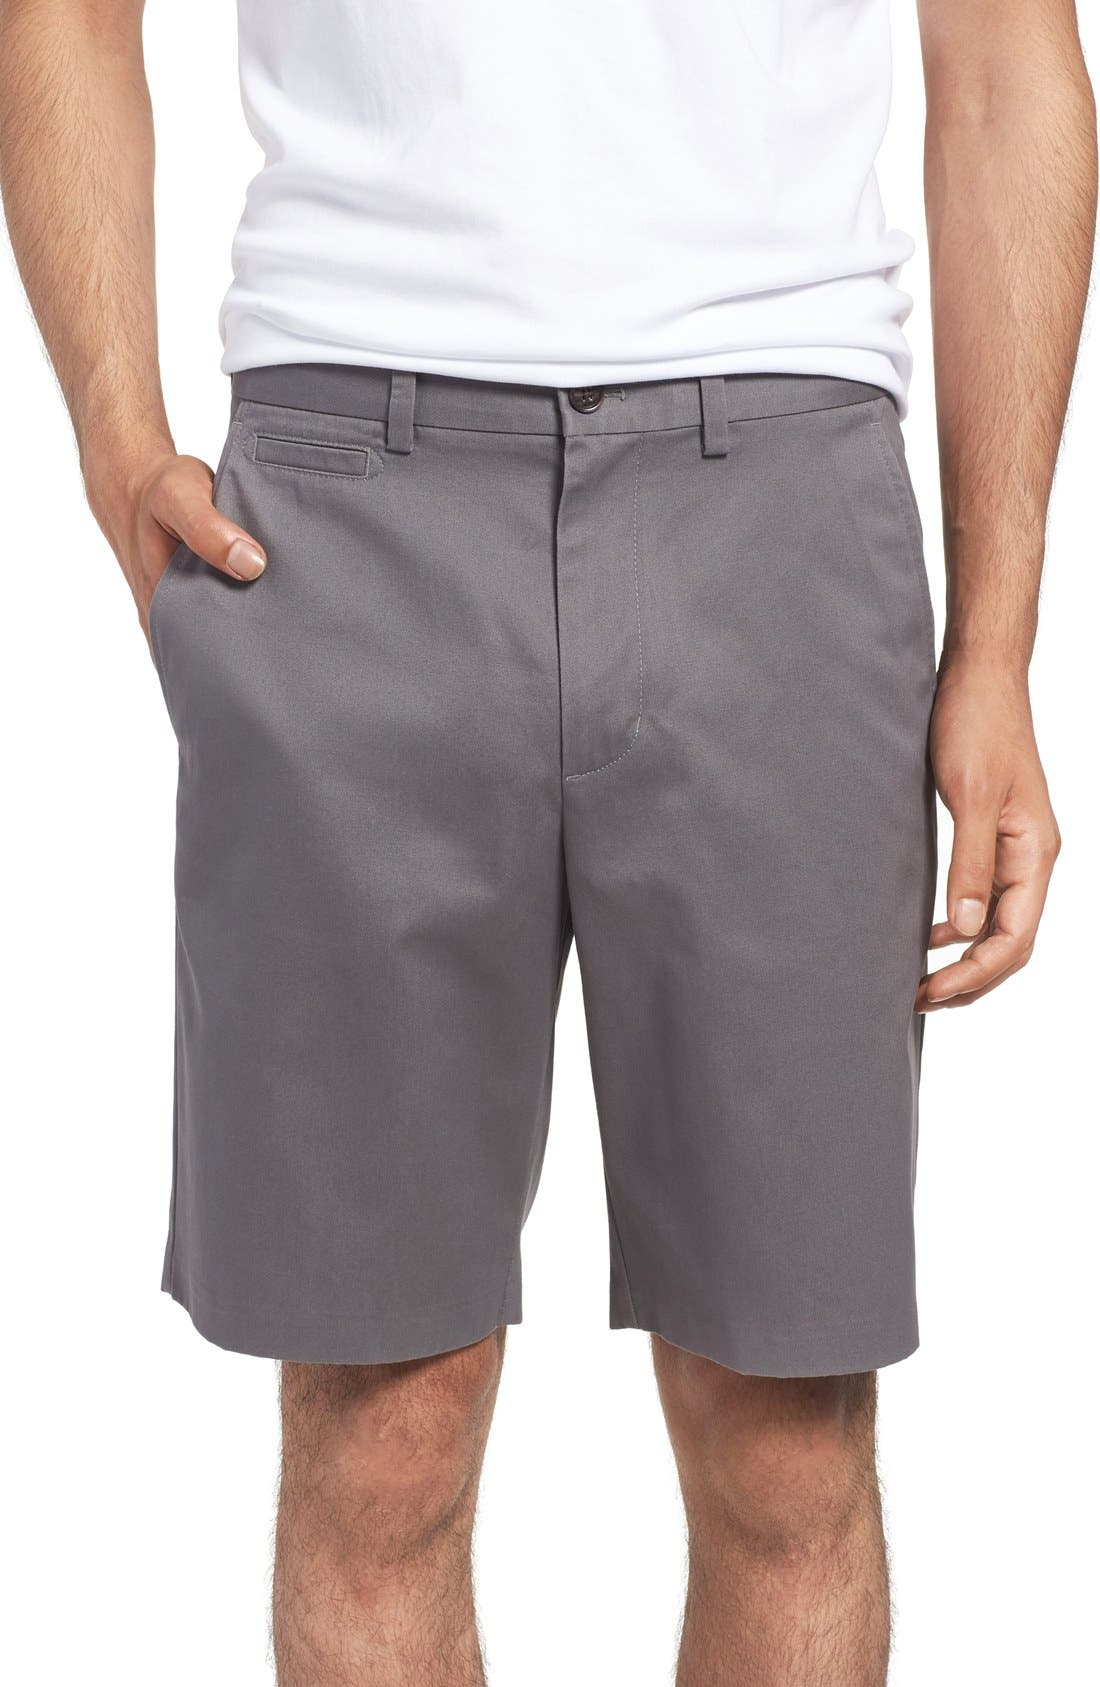 Grey Men's Shorts, Shorts for Men | Nordstrom